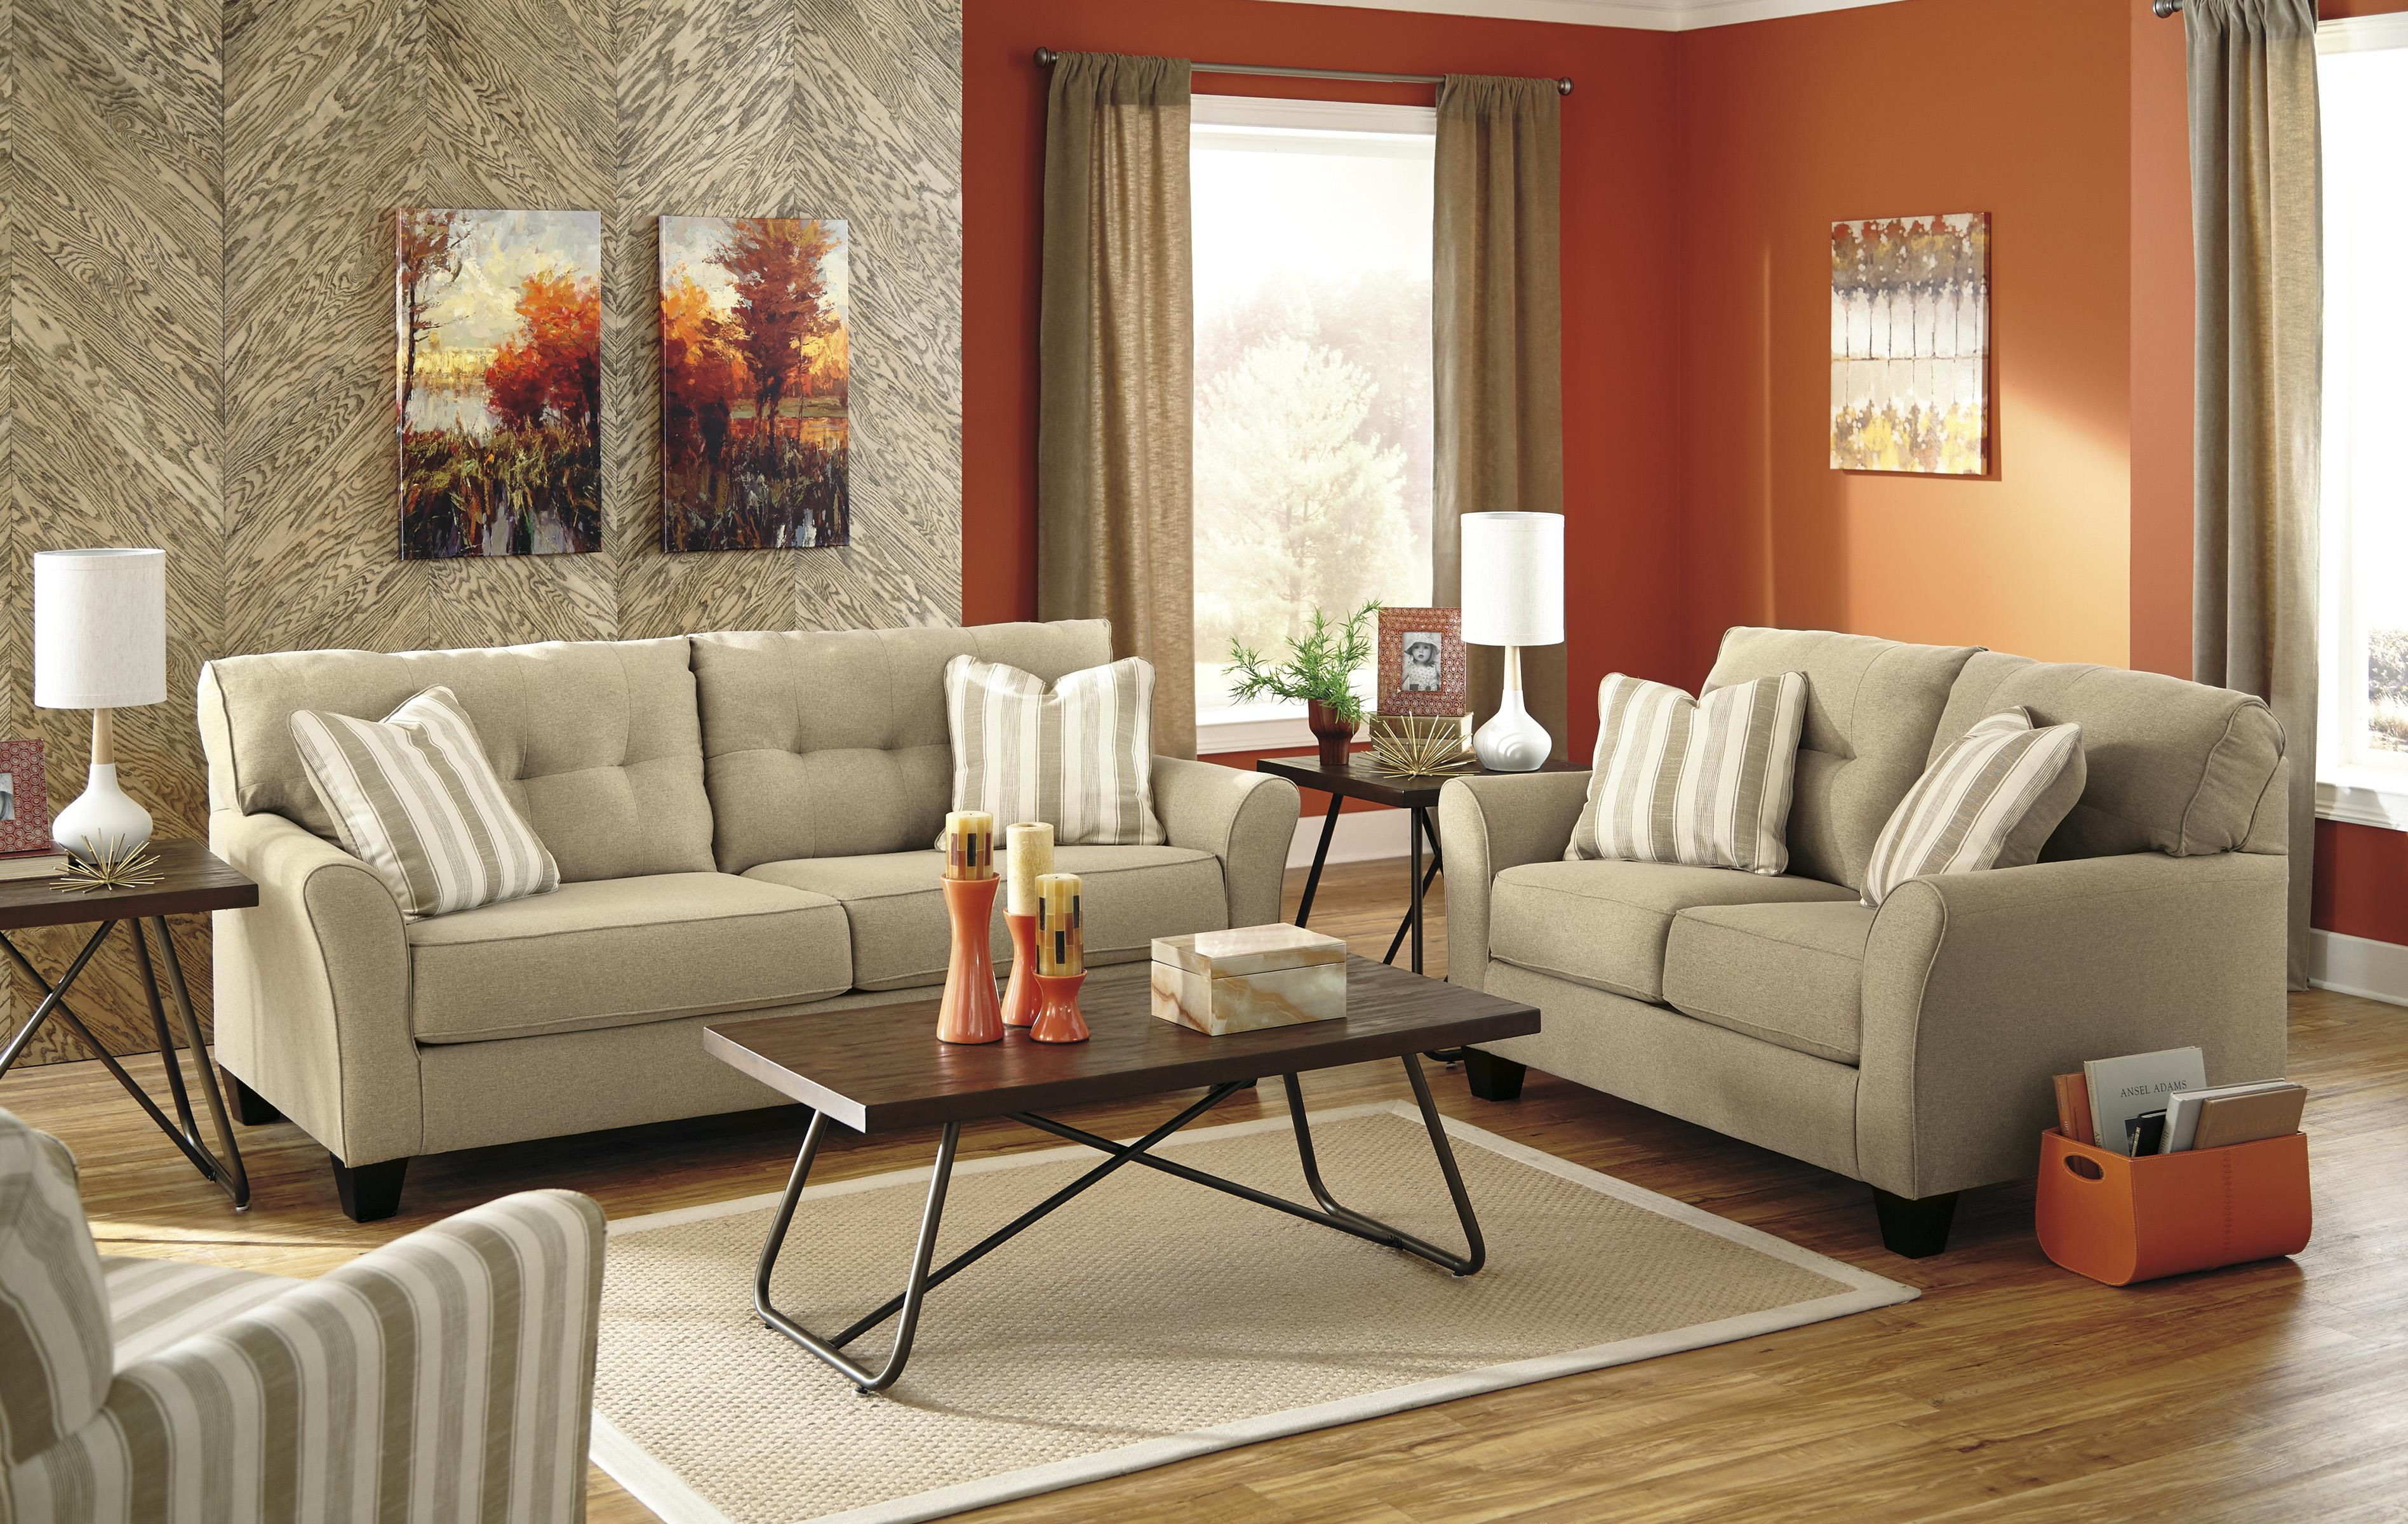 Benchcraft Laryn Stationary Living Room Group - Item Number: 51902 Living Room Group 3